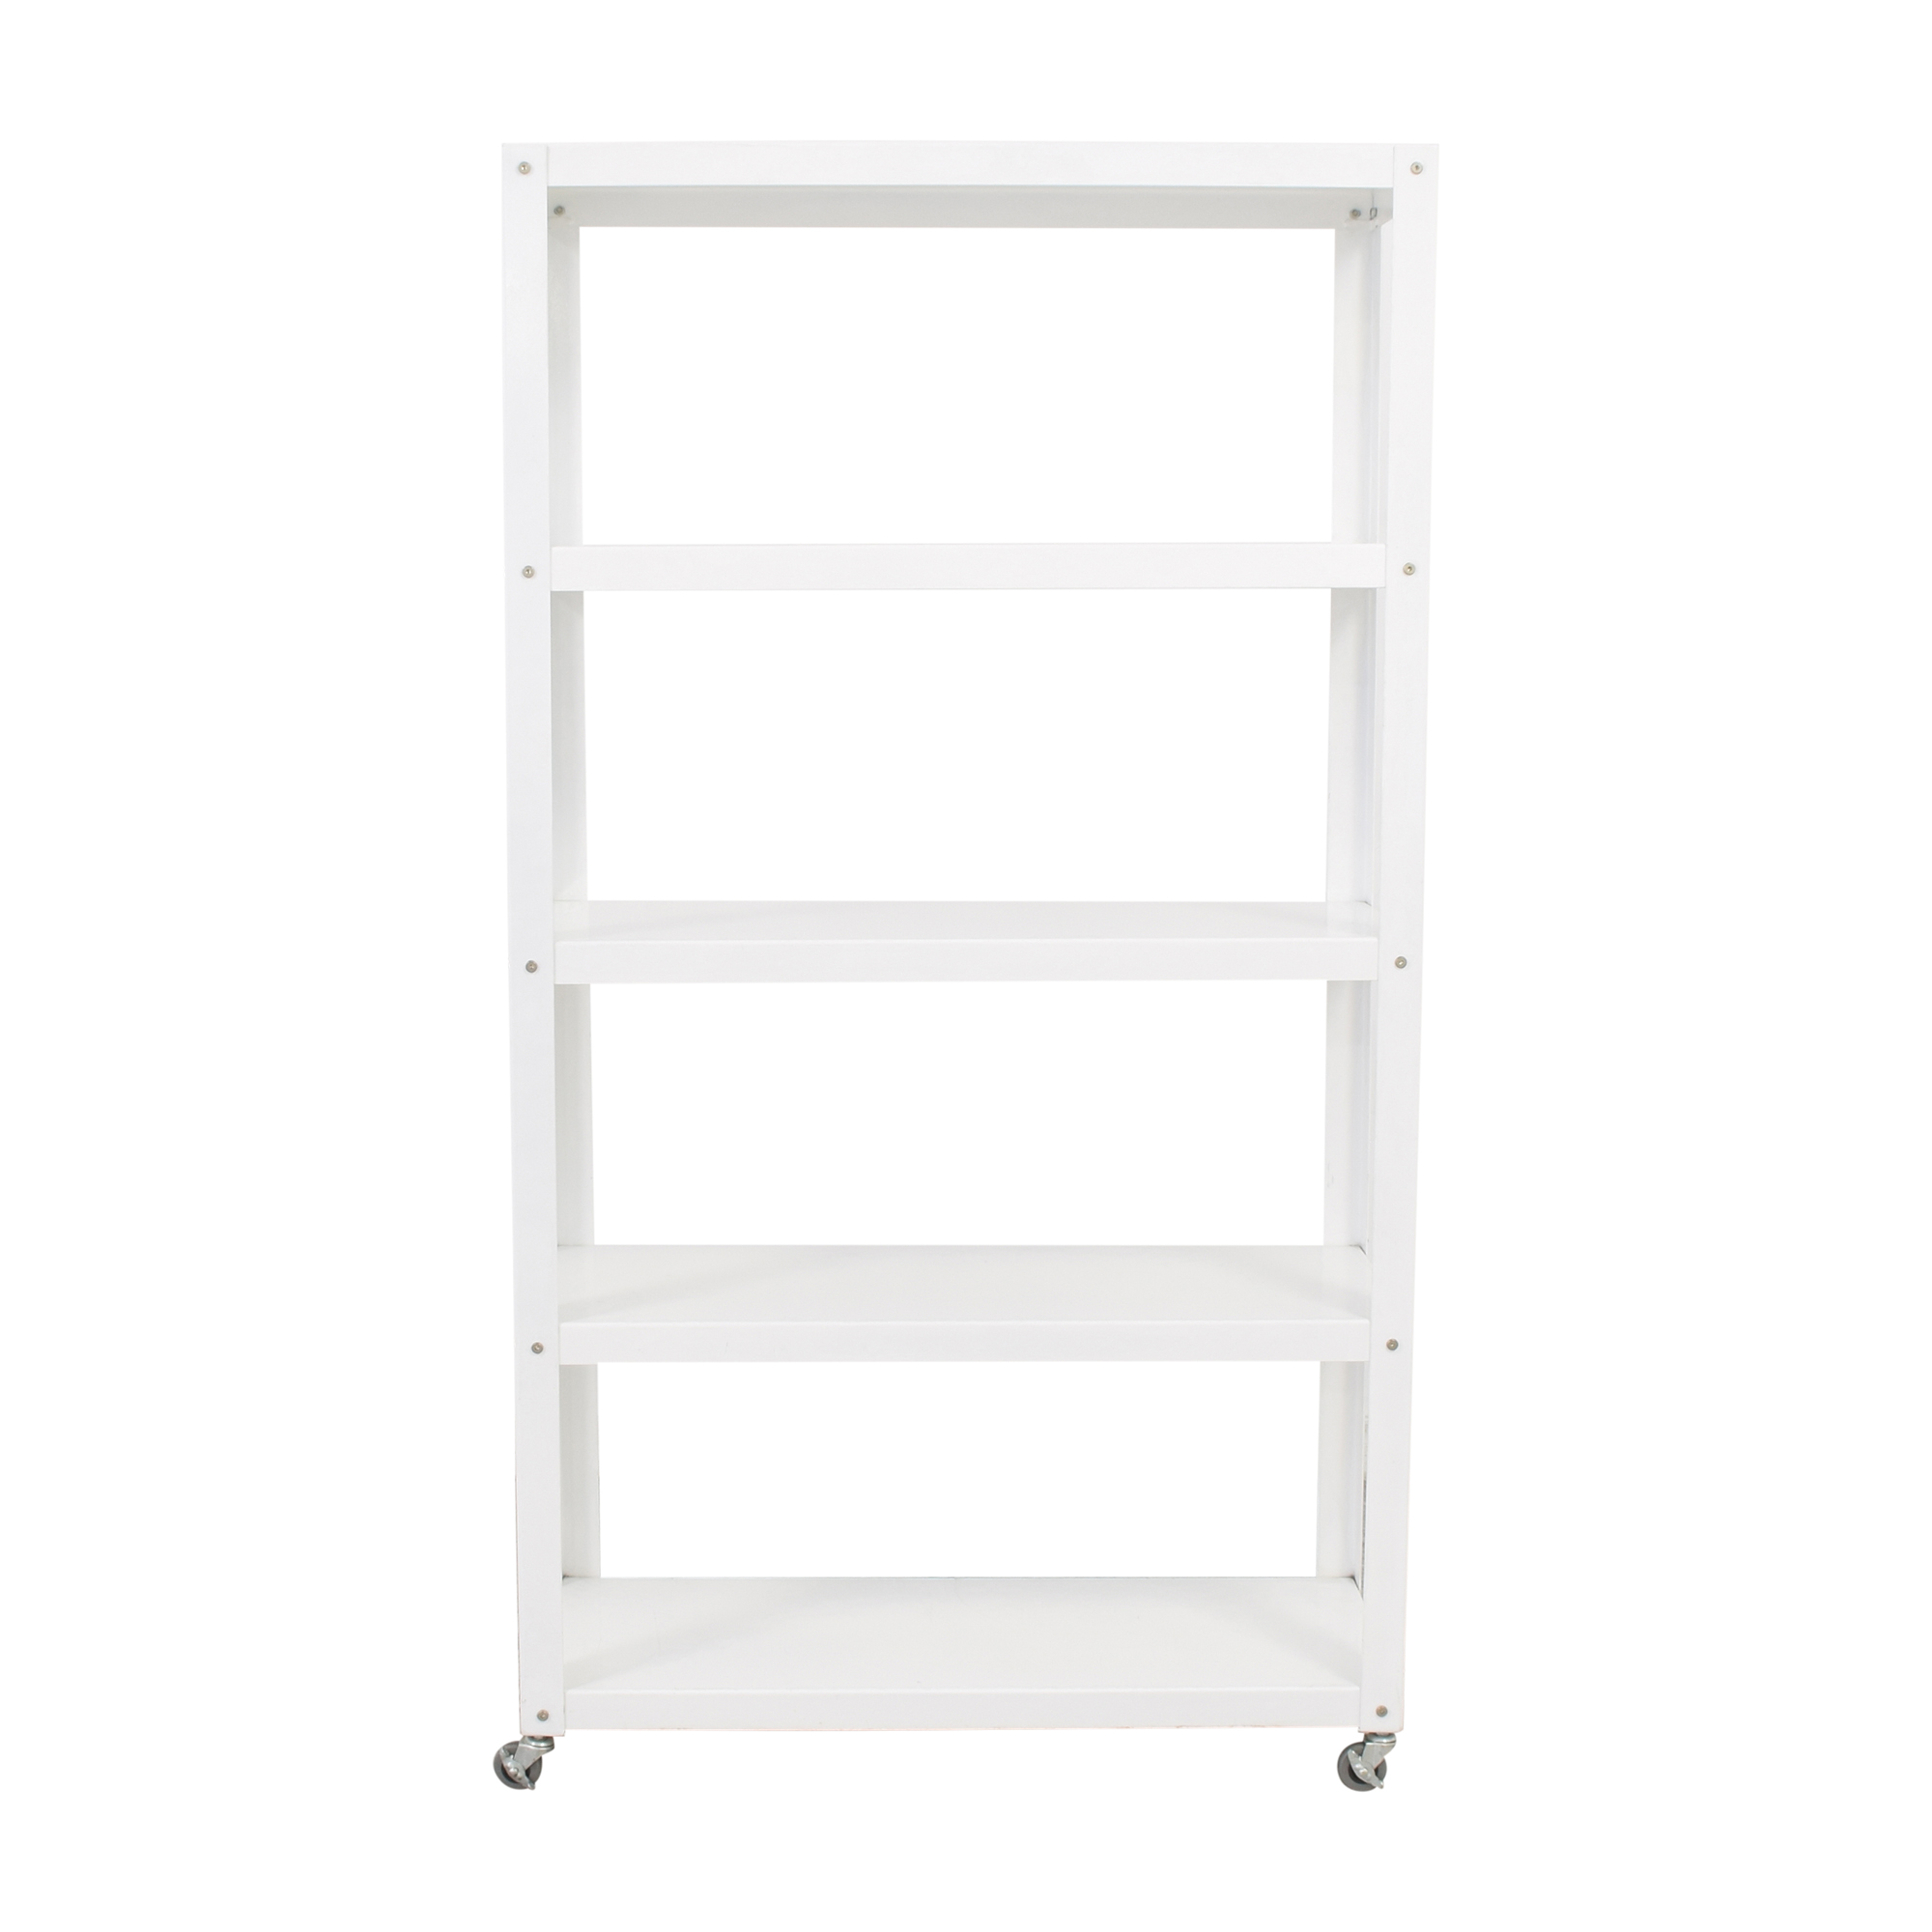 CB2 CB2 Rolling Shelf Unit white